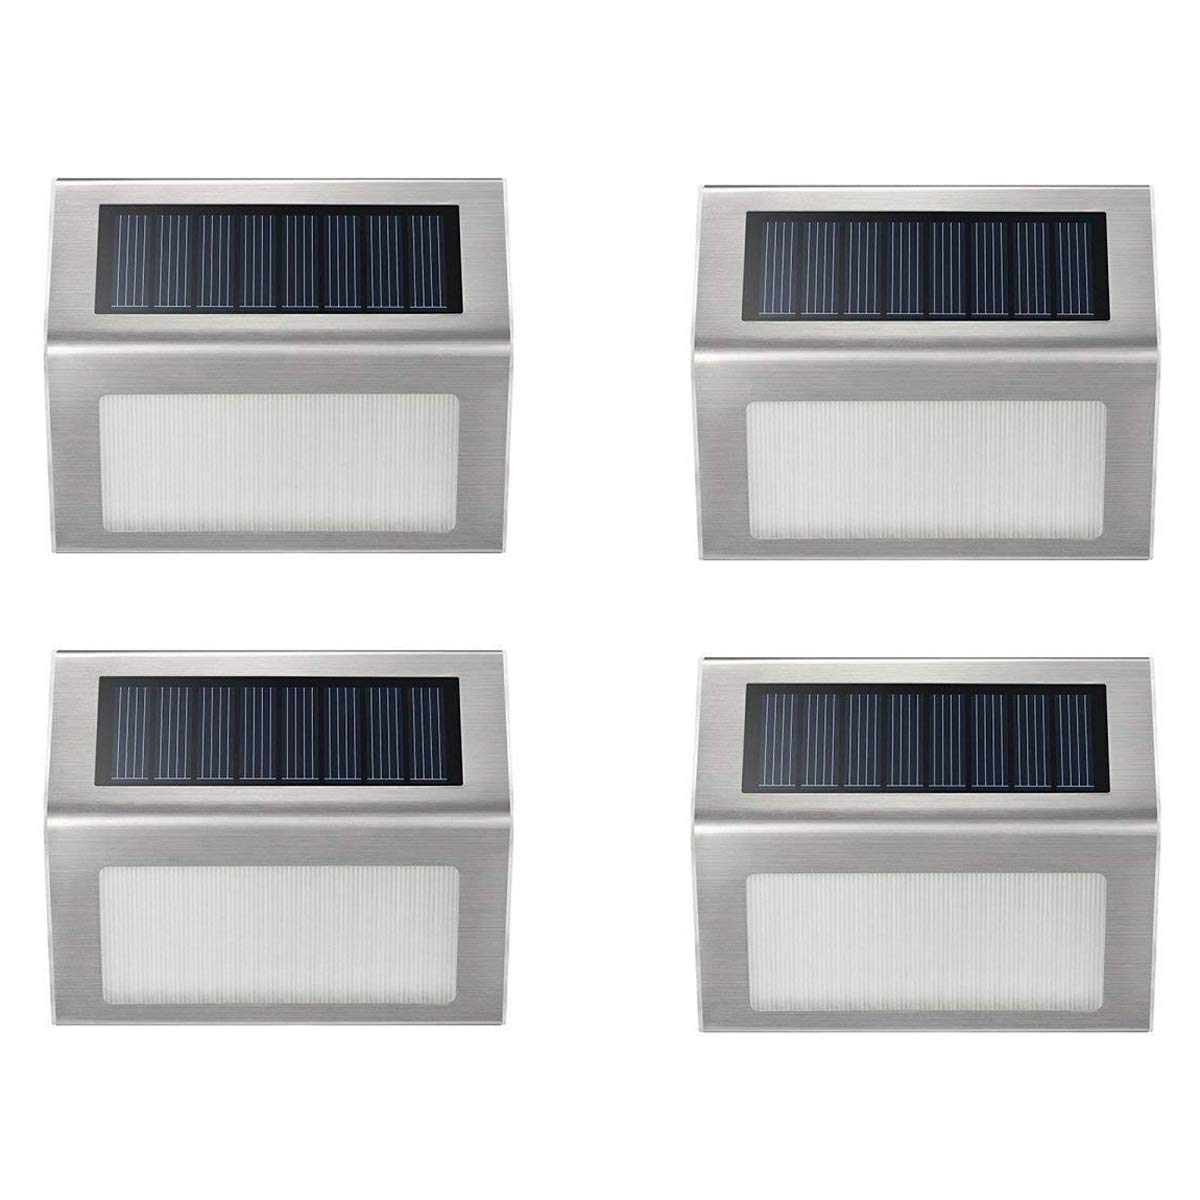 Solar Deck Lights, iThird 3 LED Solar Powered Step Lights Stainless Steel Outdoor Lighting for Stair Fence Paths Auto On/Off Waterproof 4 Pack by iThird